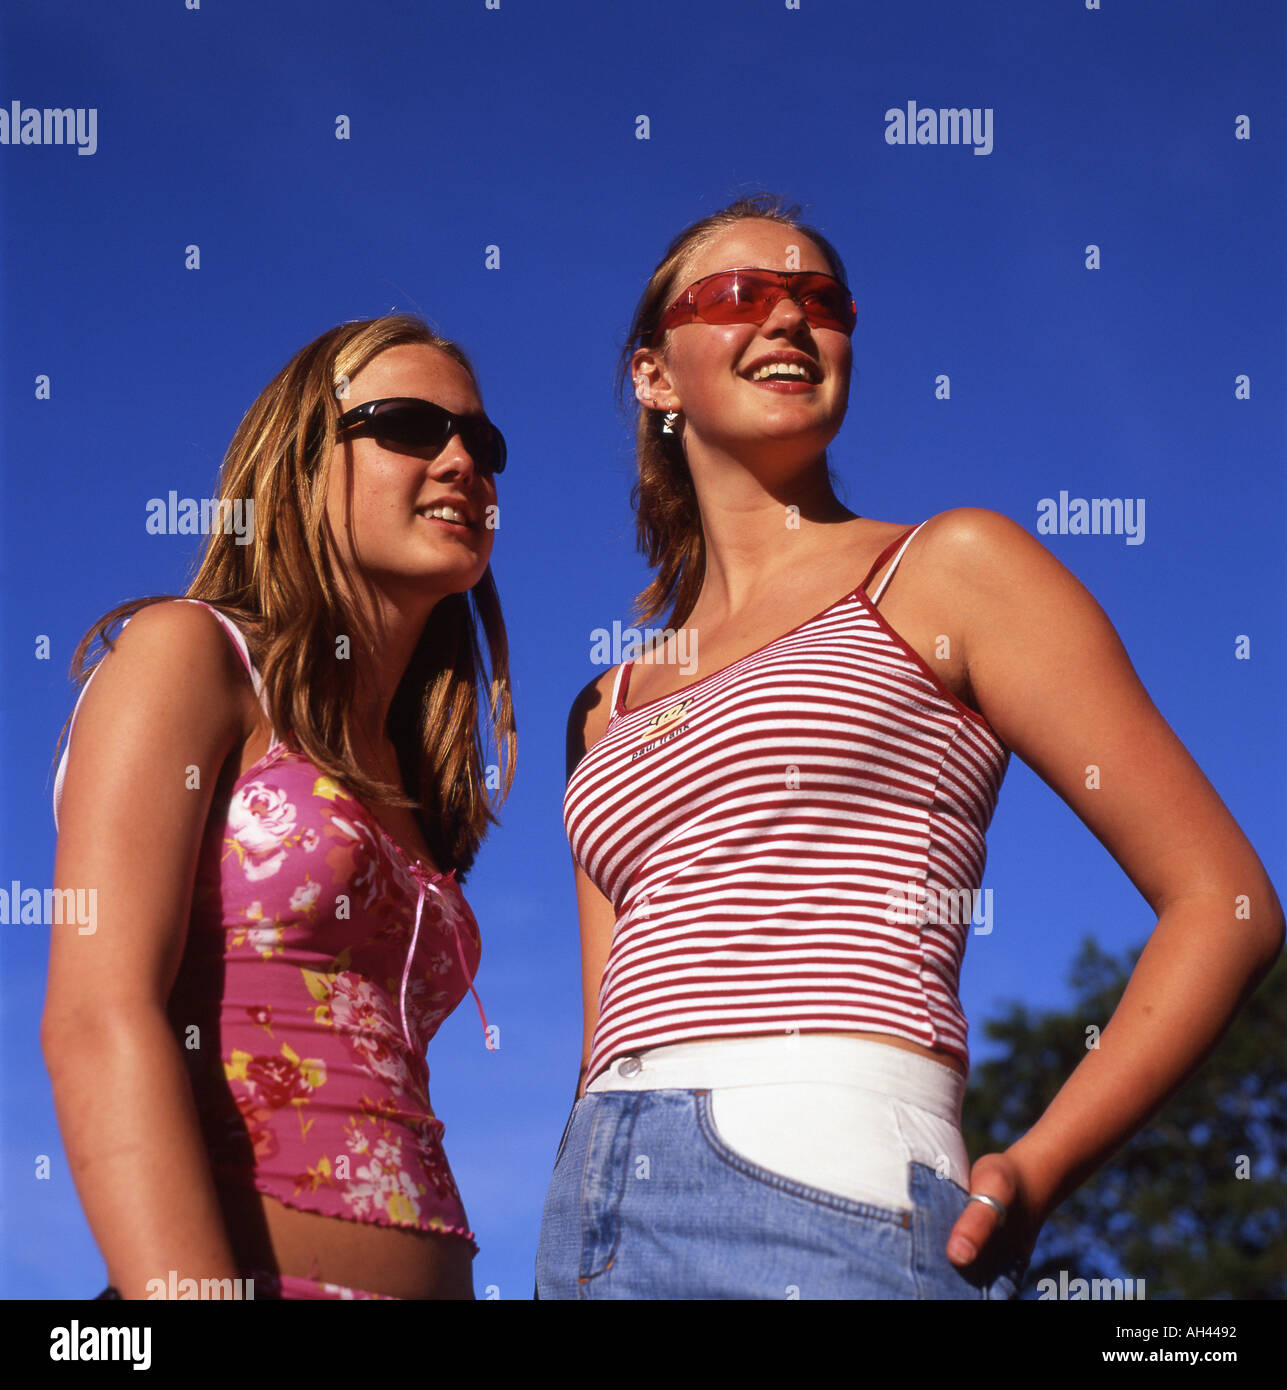 Small Teens two trendy teens teenage girls wearing sunglasses and small tops